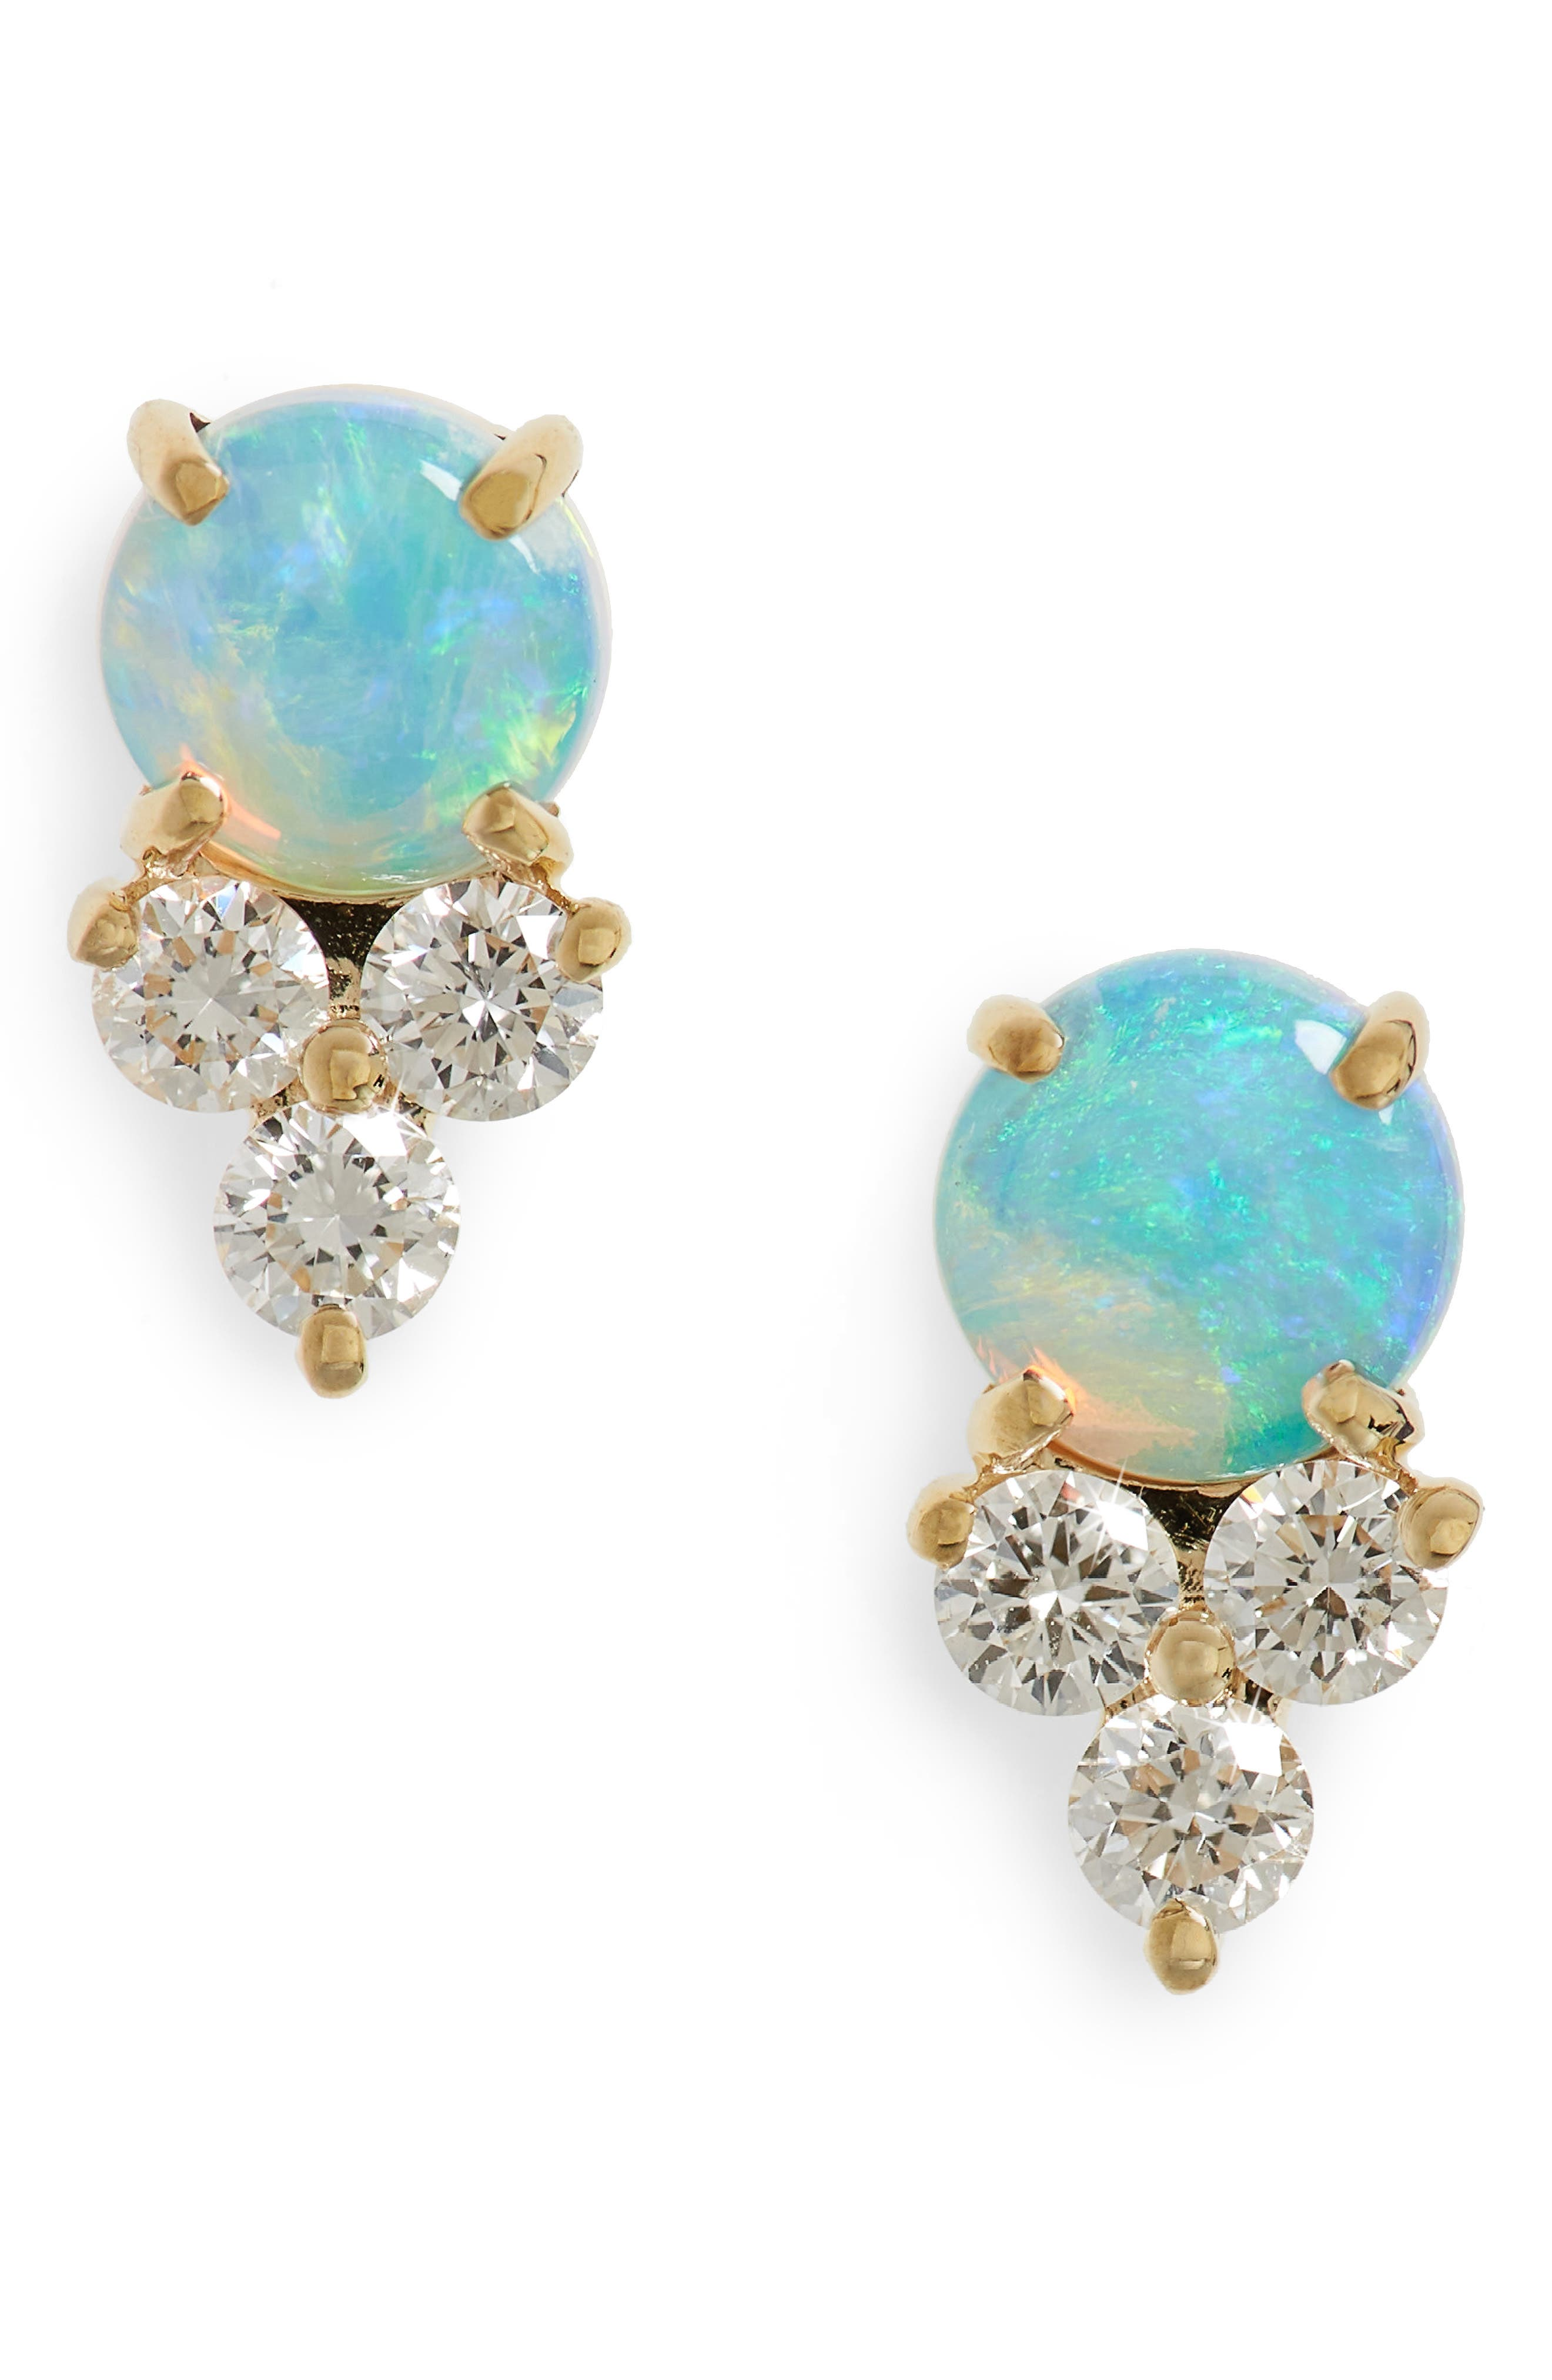 Diamond Trio Stone Stud Earrings,                             Main thumbnail 1, color,                             Yellow Gold/ Opal